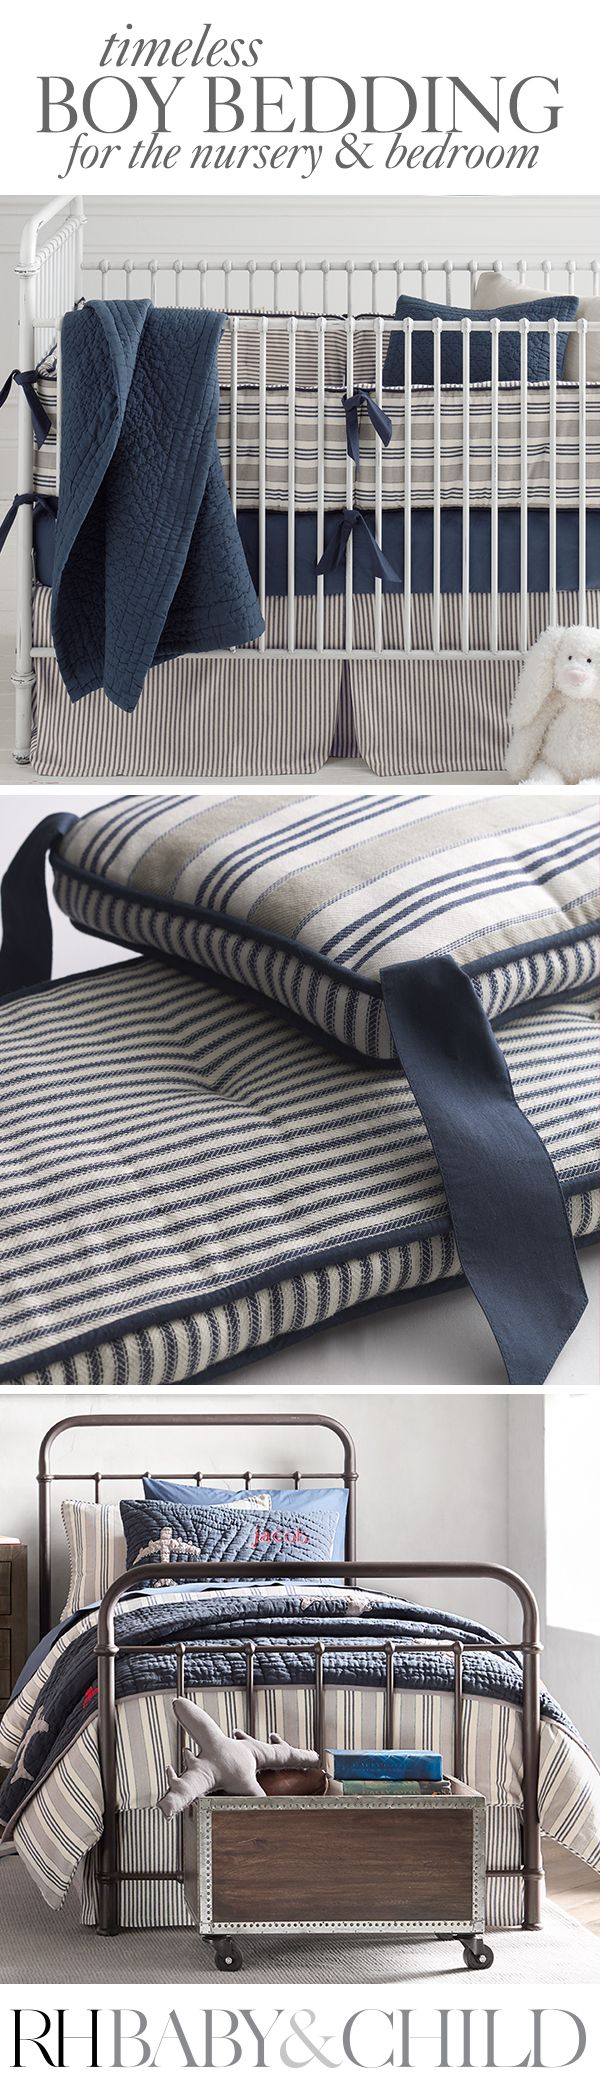 Tailored From Pure Cotton With Classic Yarn Dyed Stripes